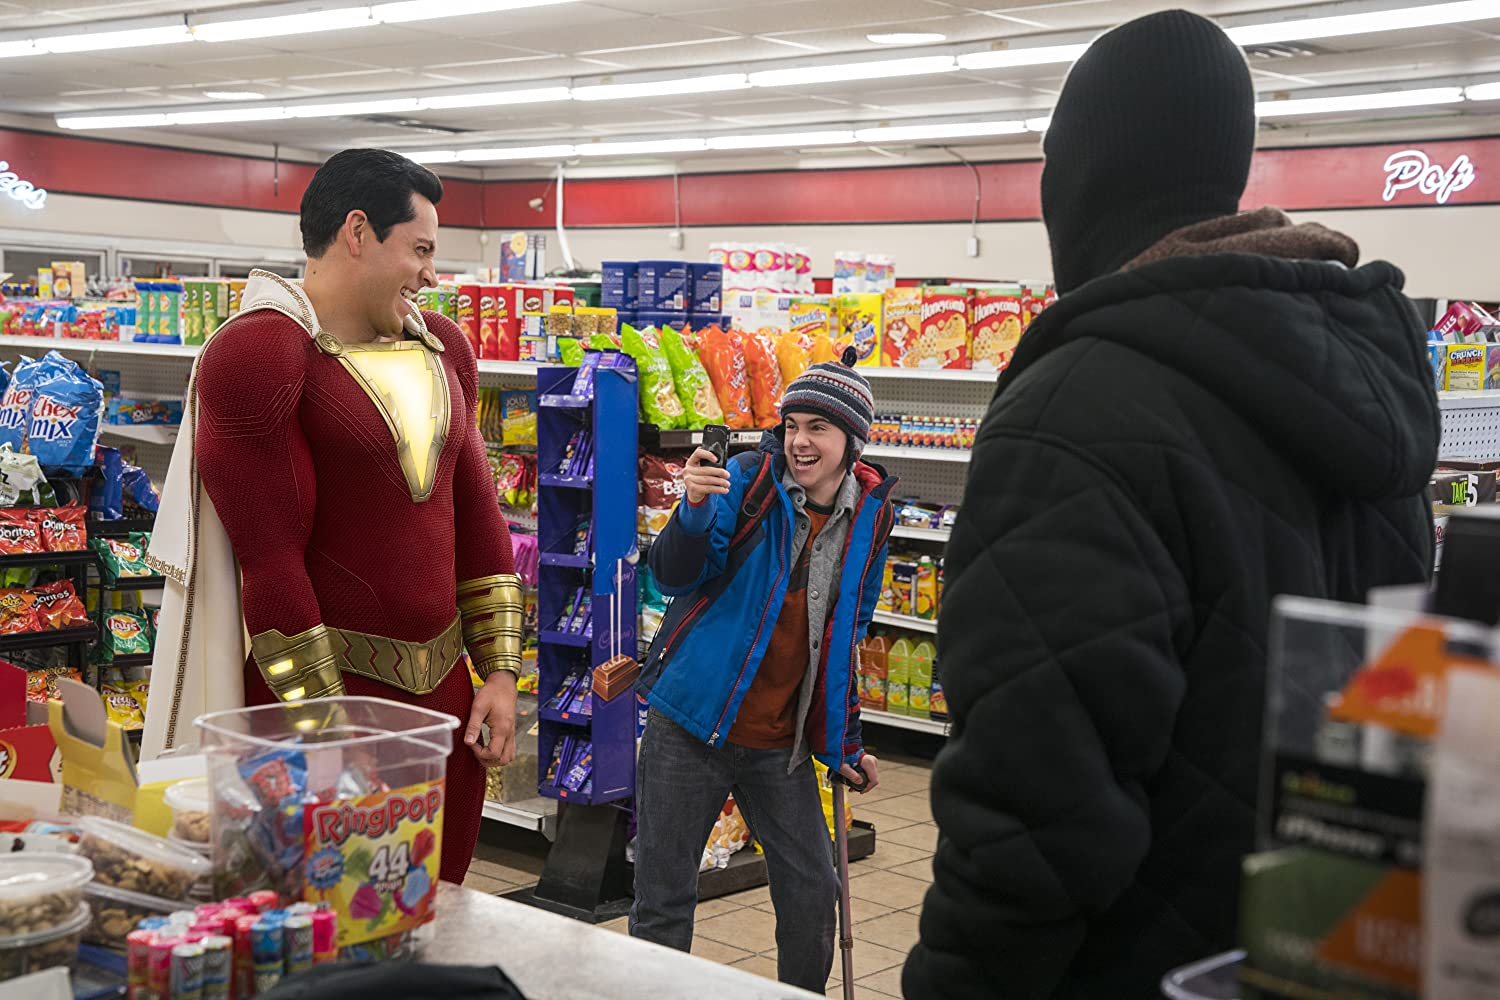 Zachary Levi and Jack Dylan Grazer in Shazam! (2019)